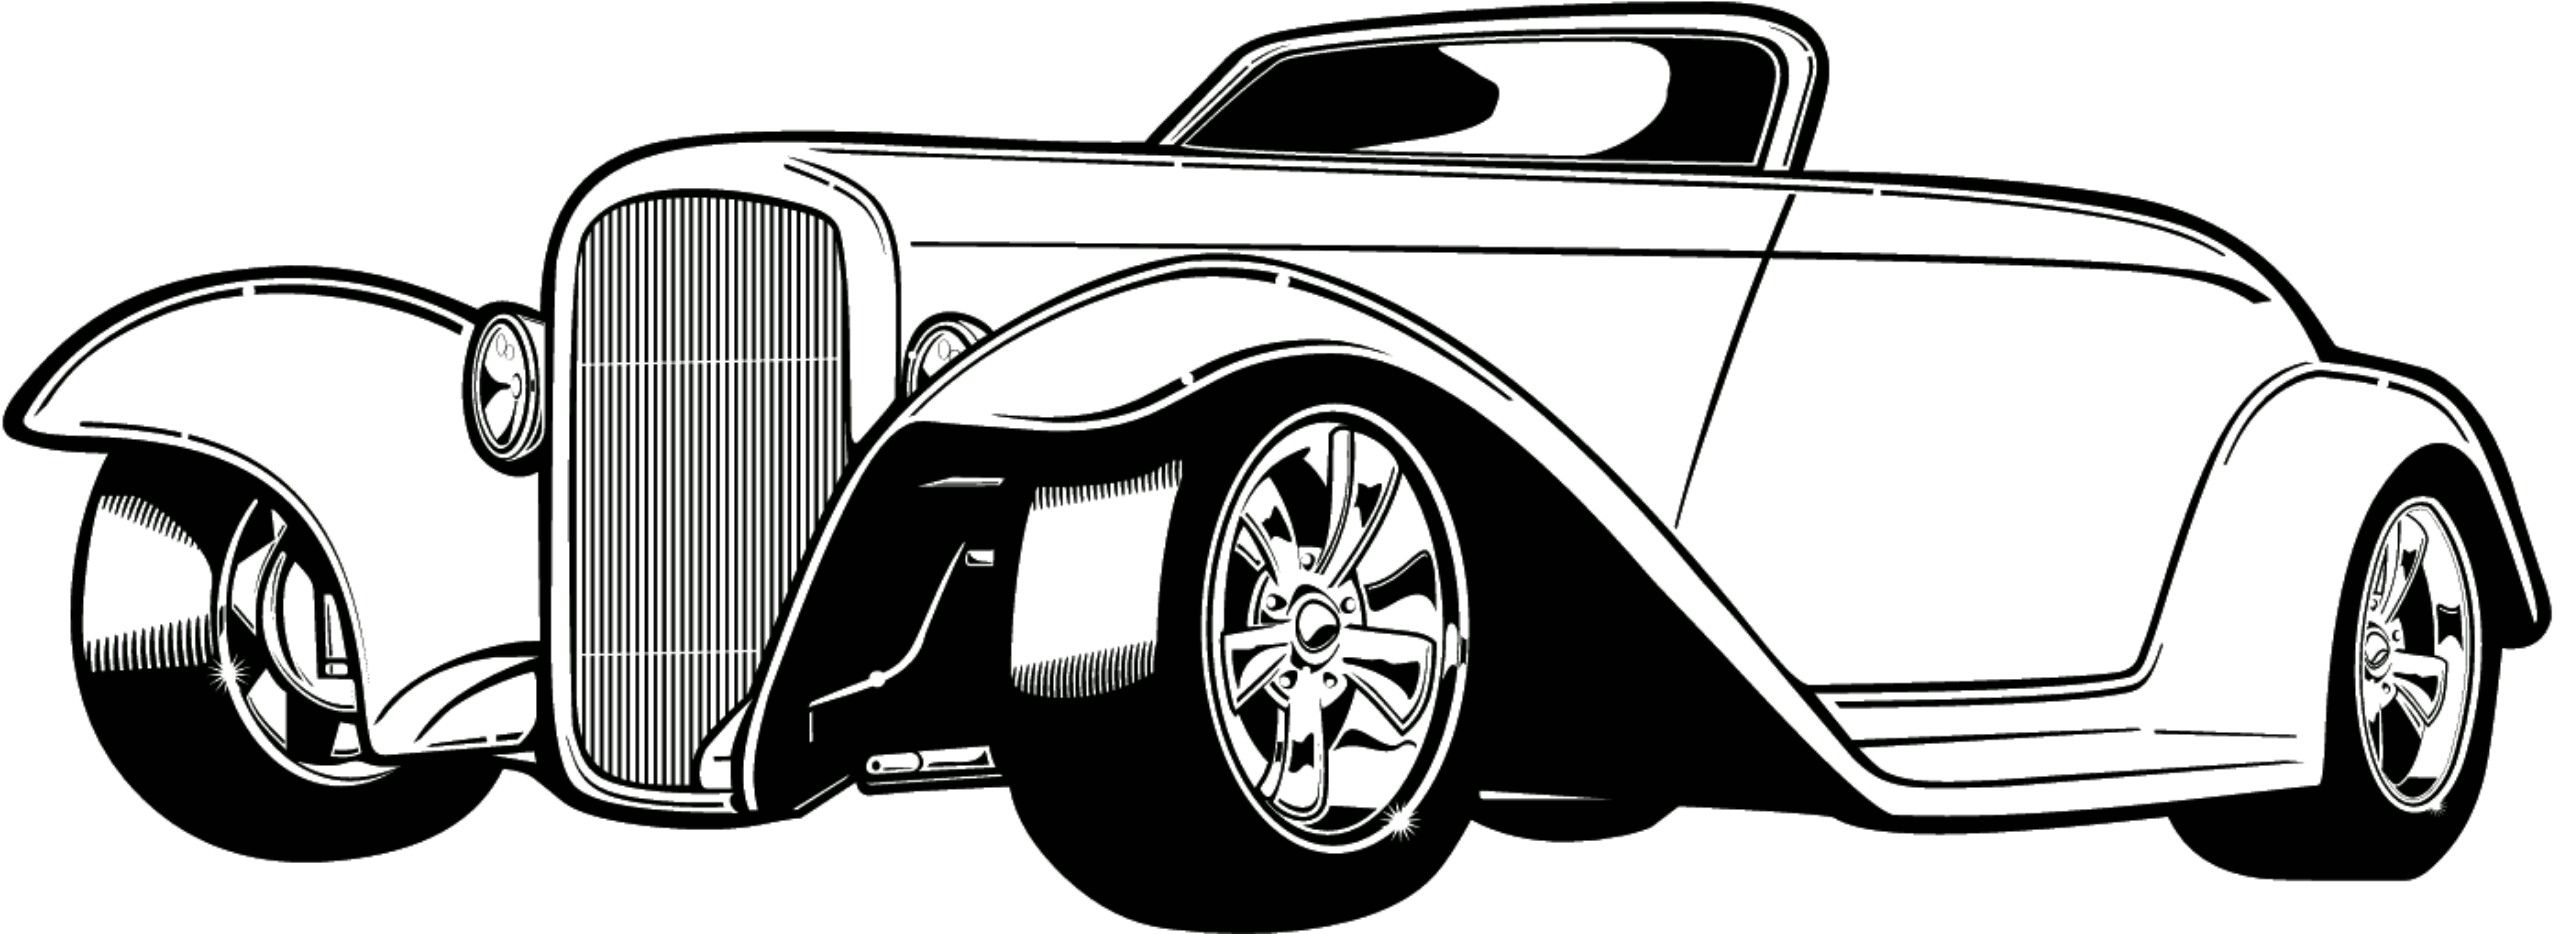 hight resolution of cars coloring pages adult coloring pages hot rod cars hot rods line